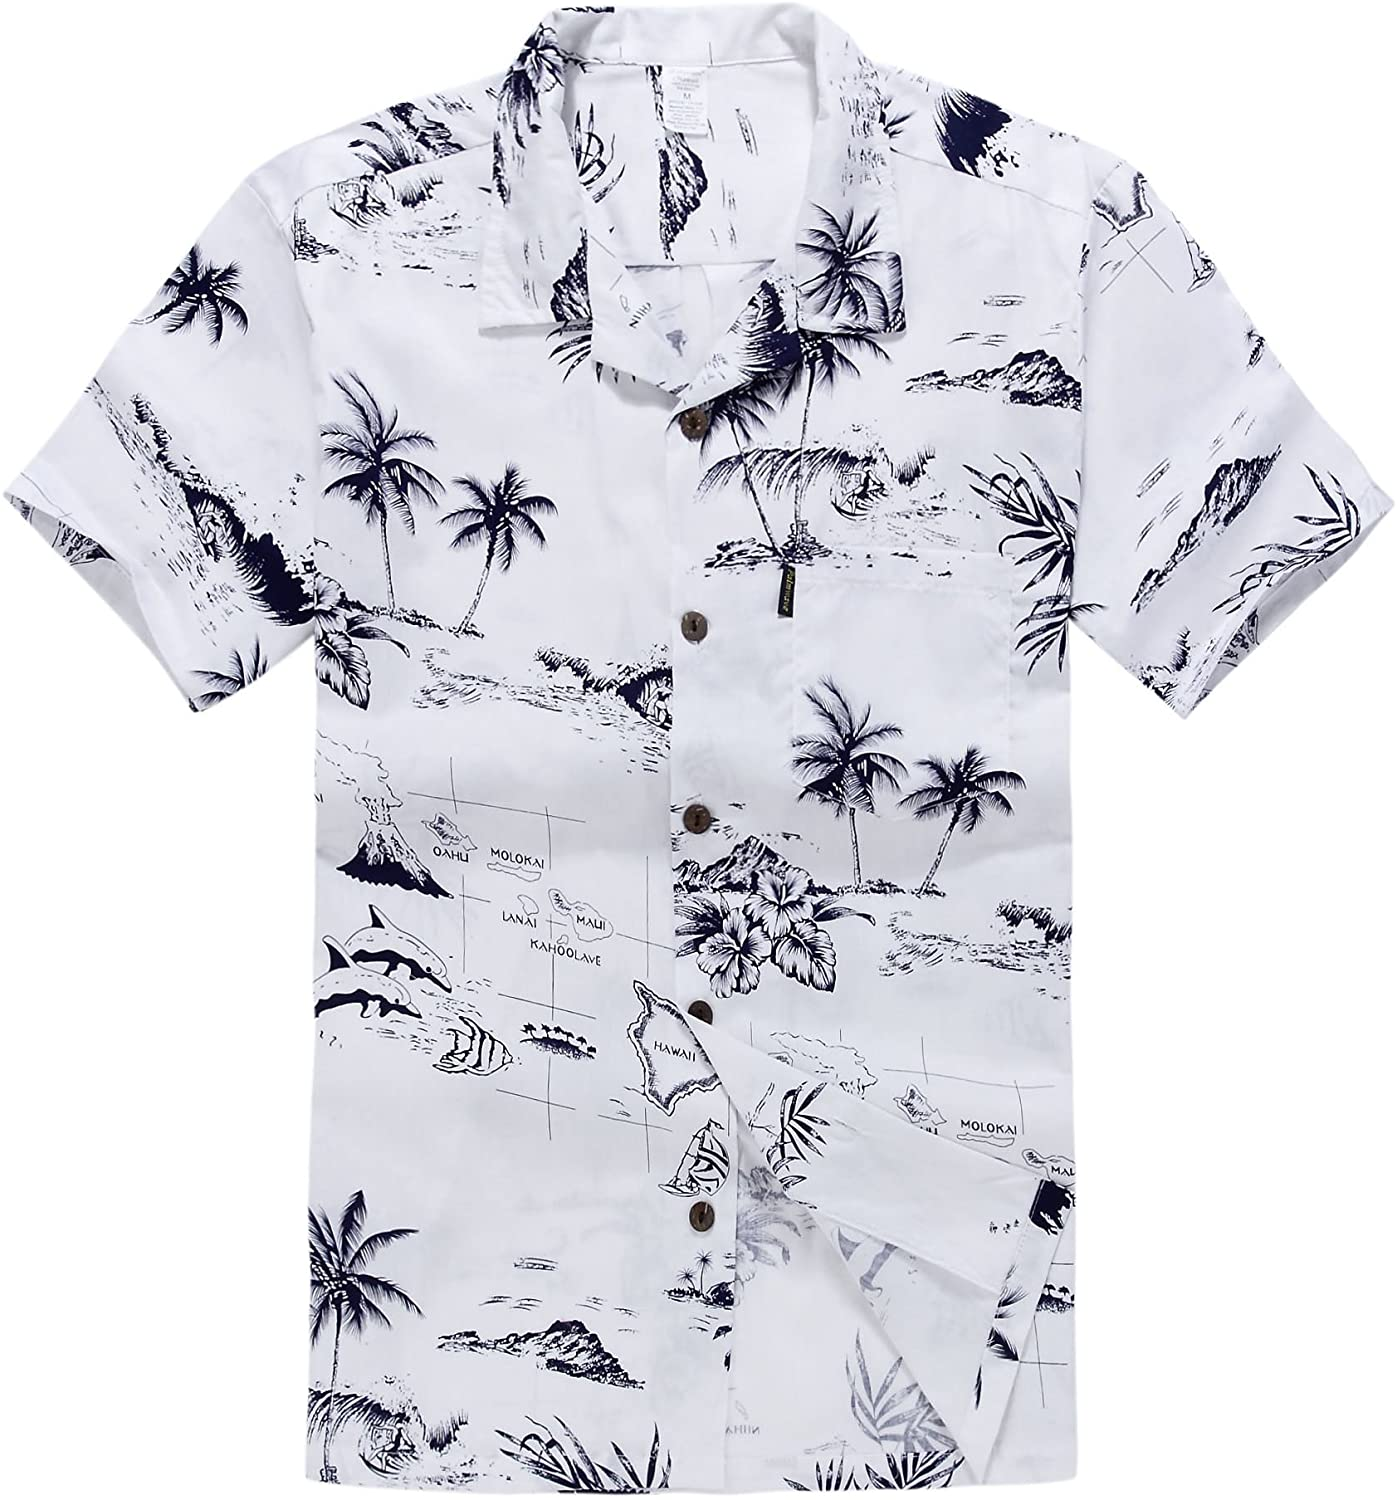 Palm Wave Men's Hawaiian Shirt Aloha Shirt White Map